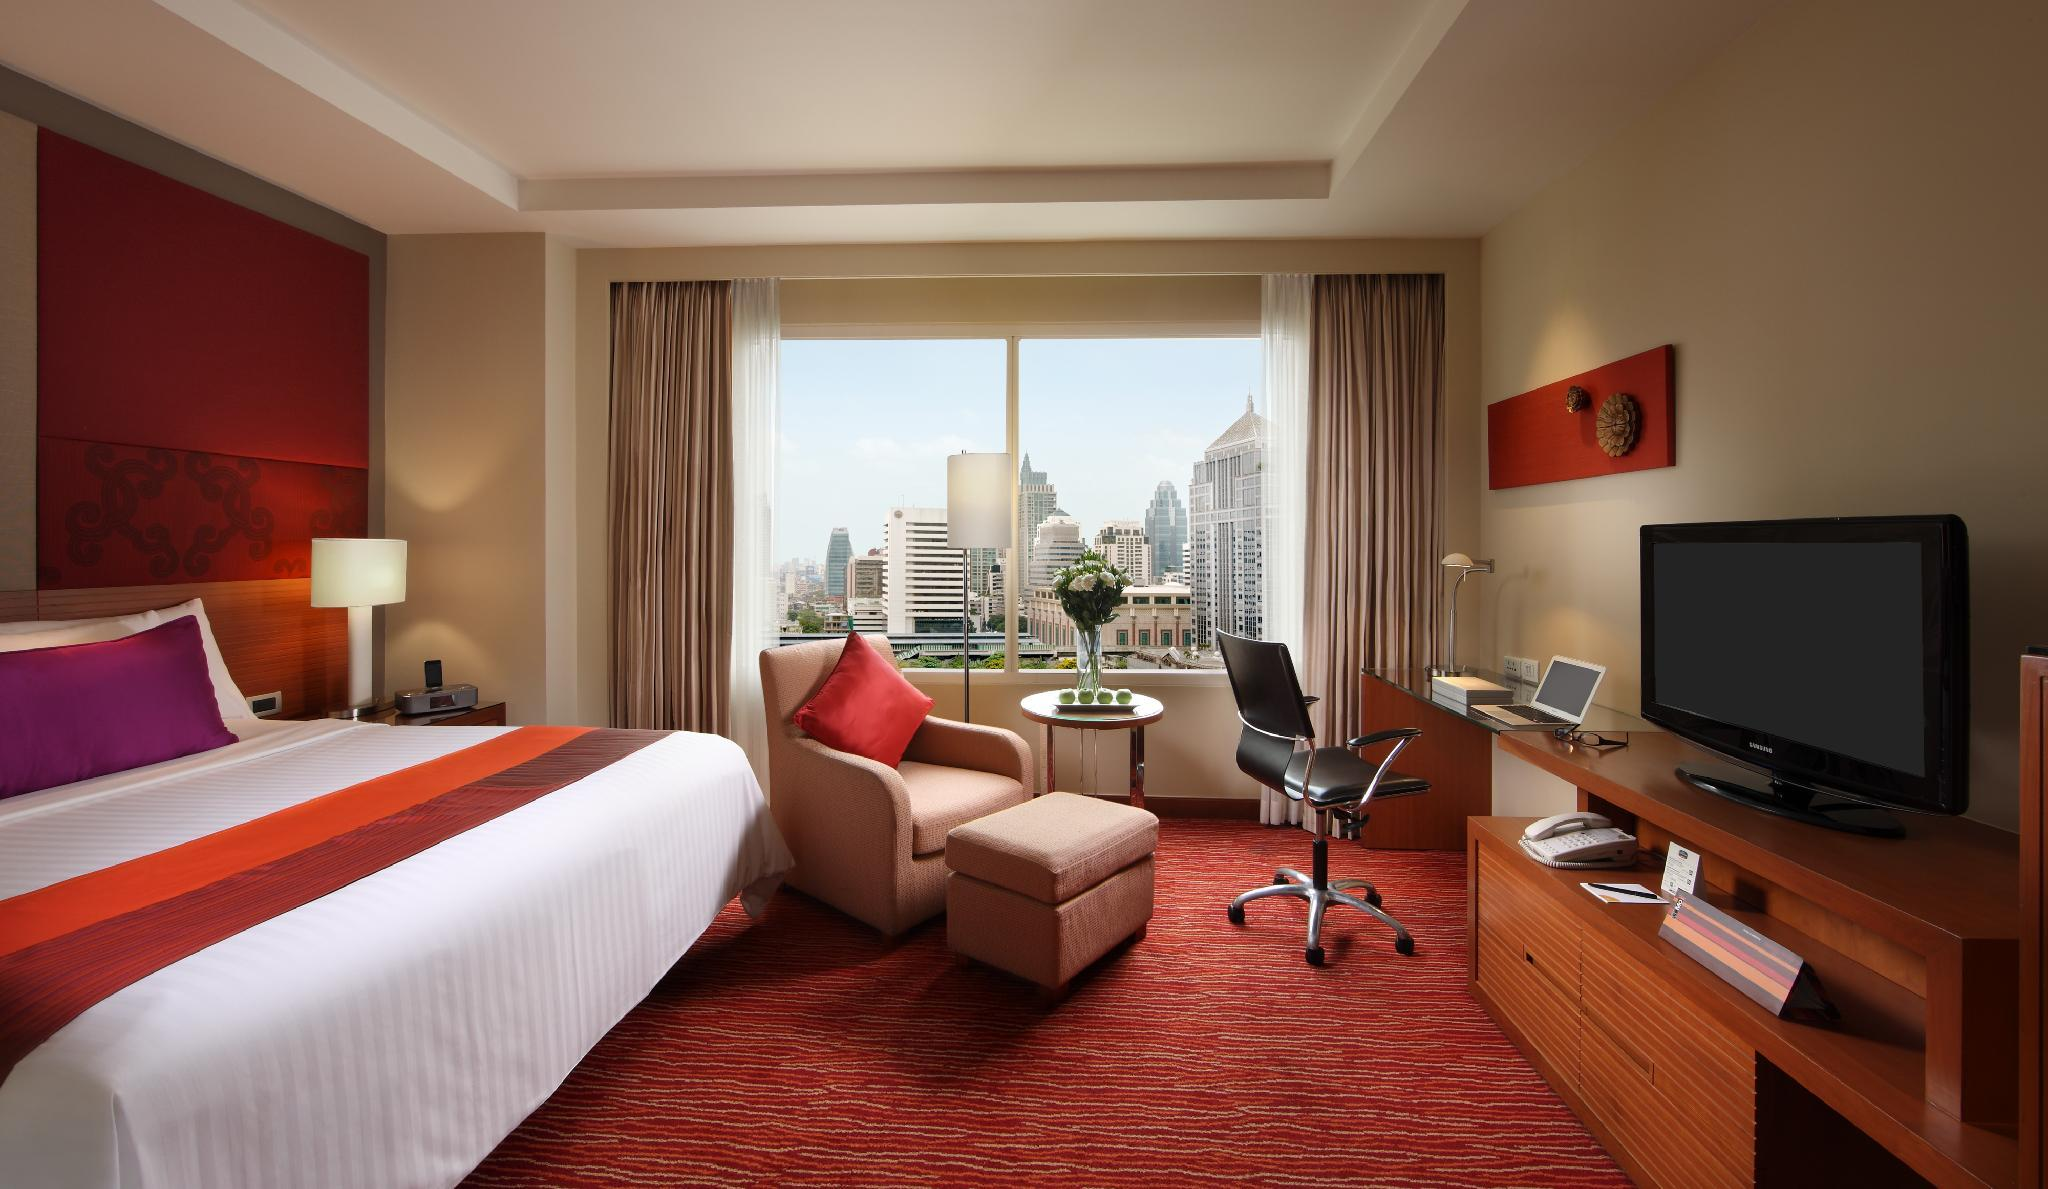 Executive, Executive lounge access, Guest room, City view